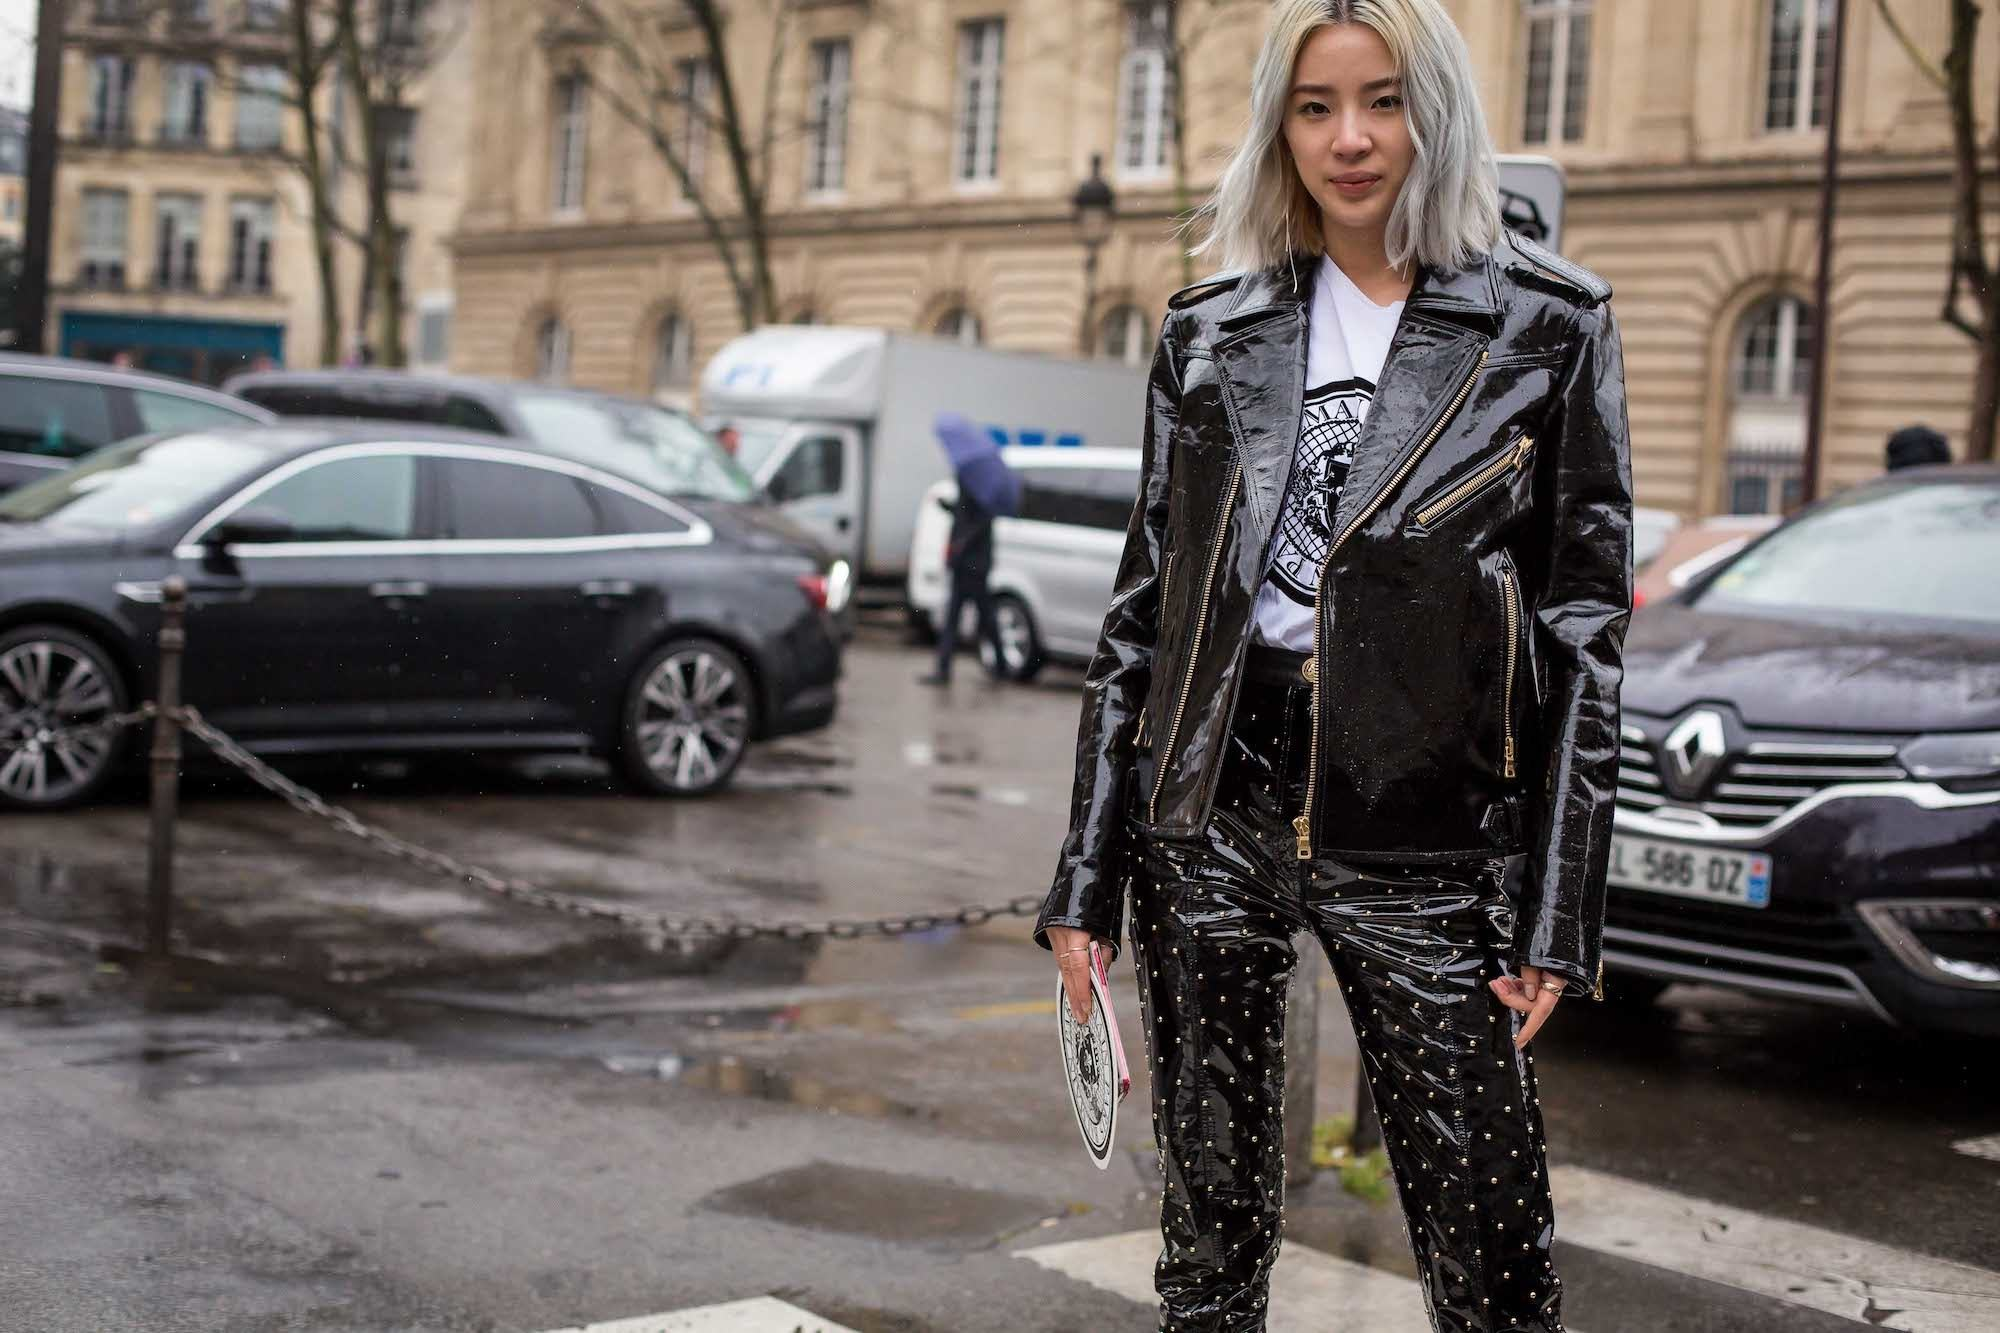 Greyish platinum blonde StreetDay4 Paris Fashion Week 2018.